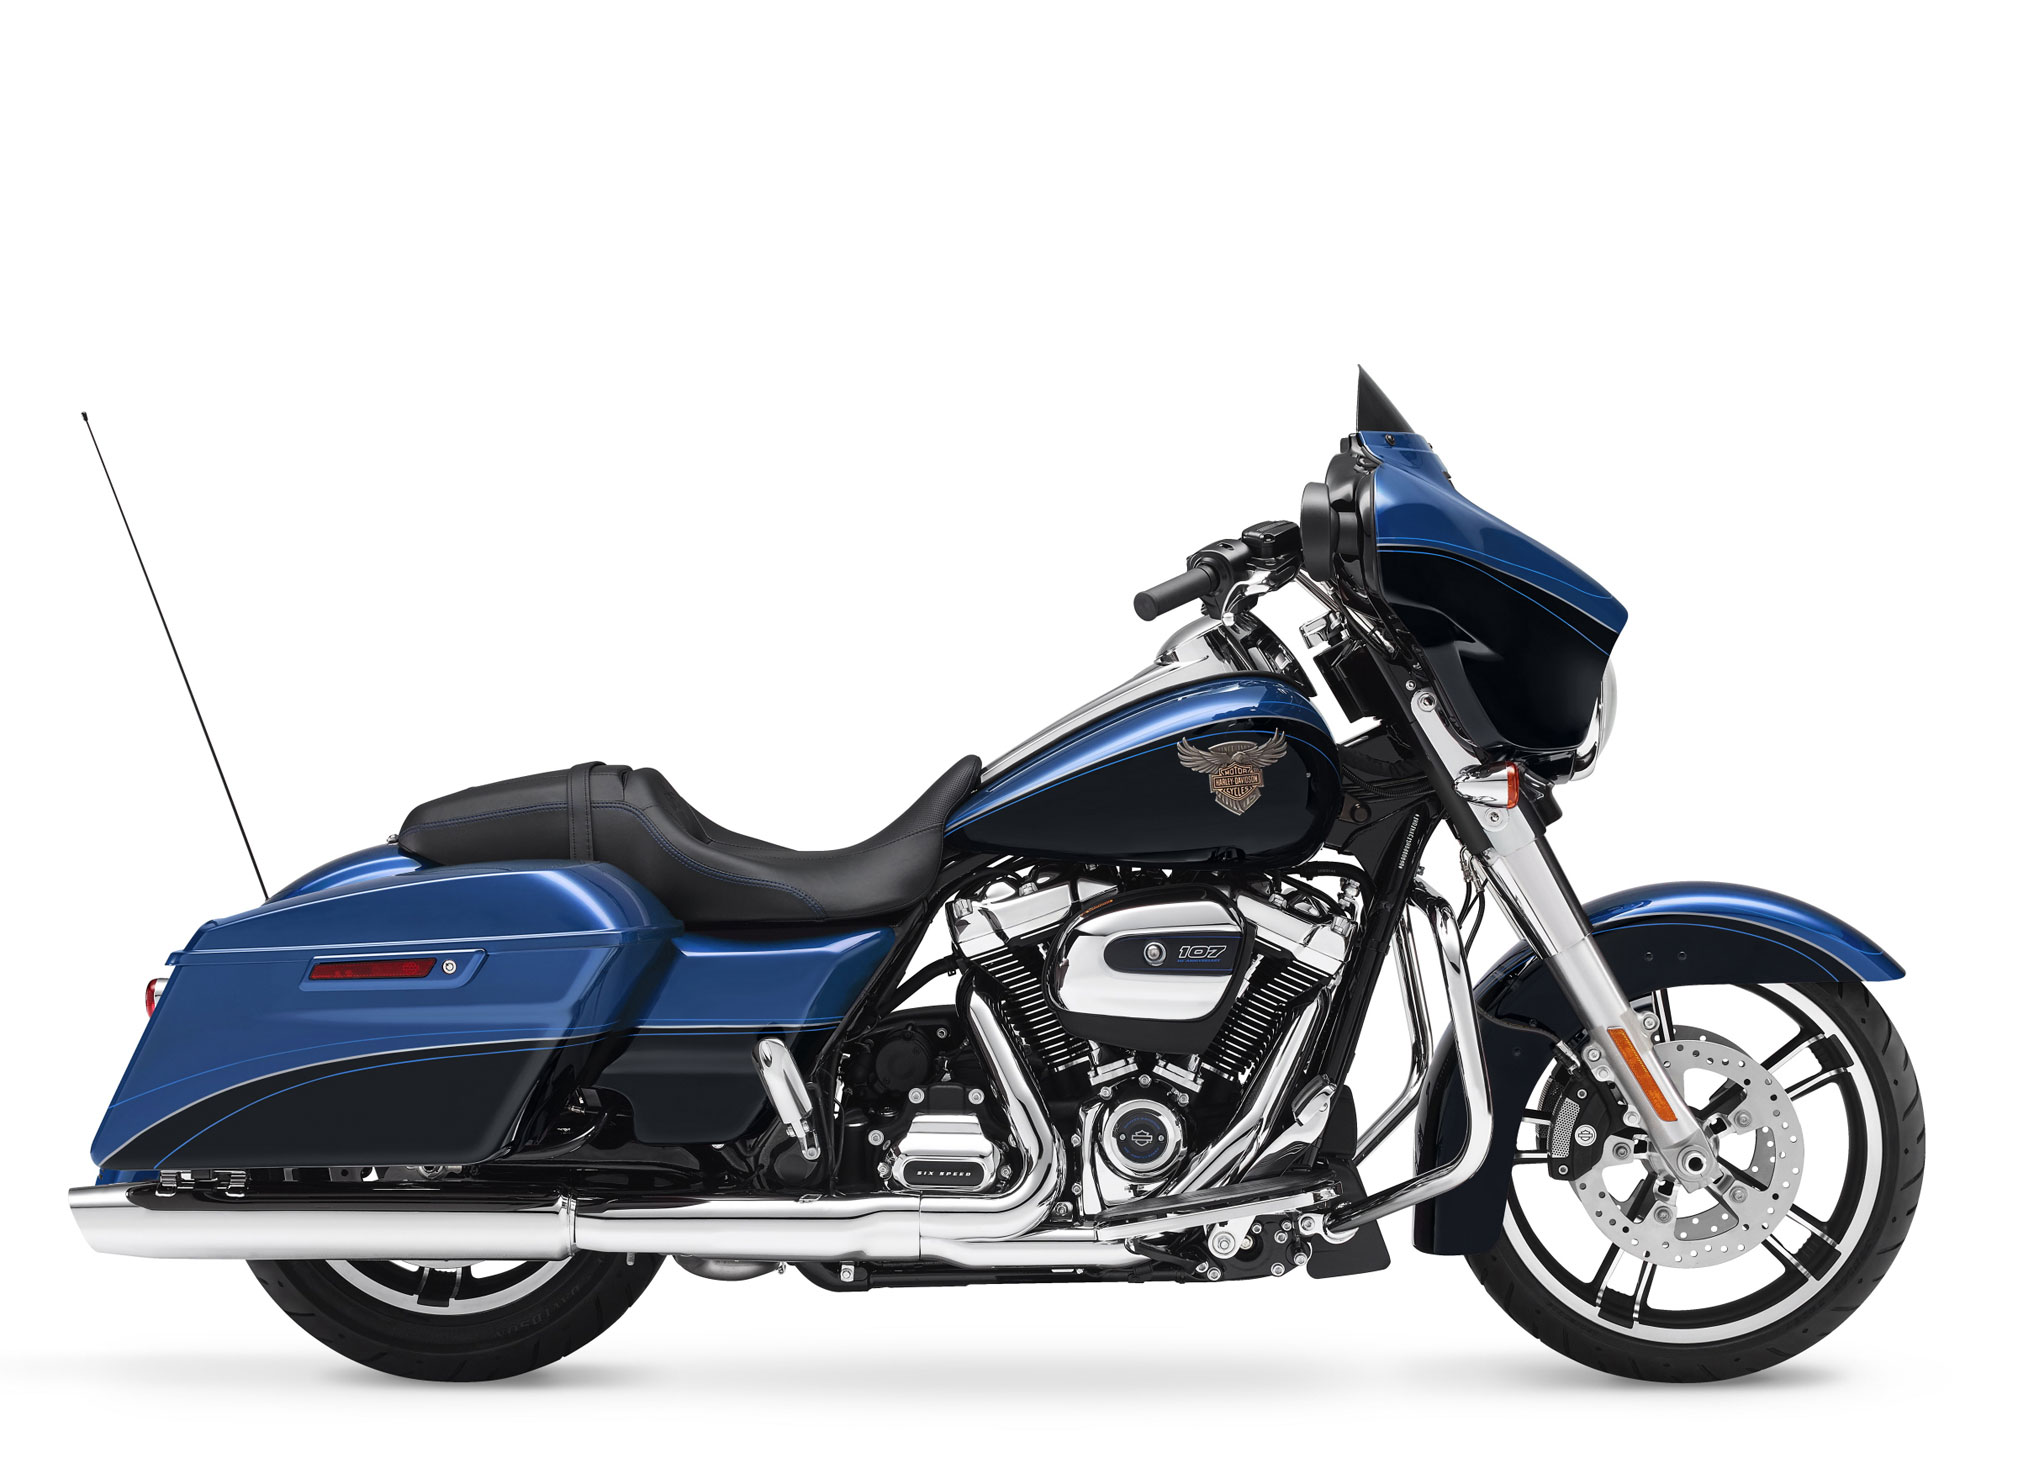 2018 harley davidson street glide 115th anniversary review totalmotorcycle. Black Bedroom Furniture Sets. Home Design Ideas